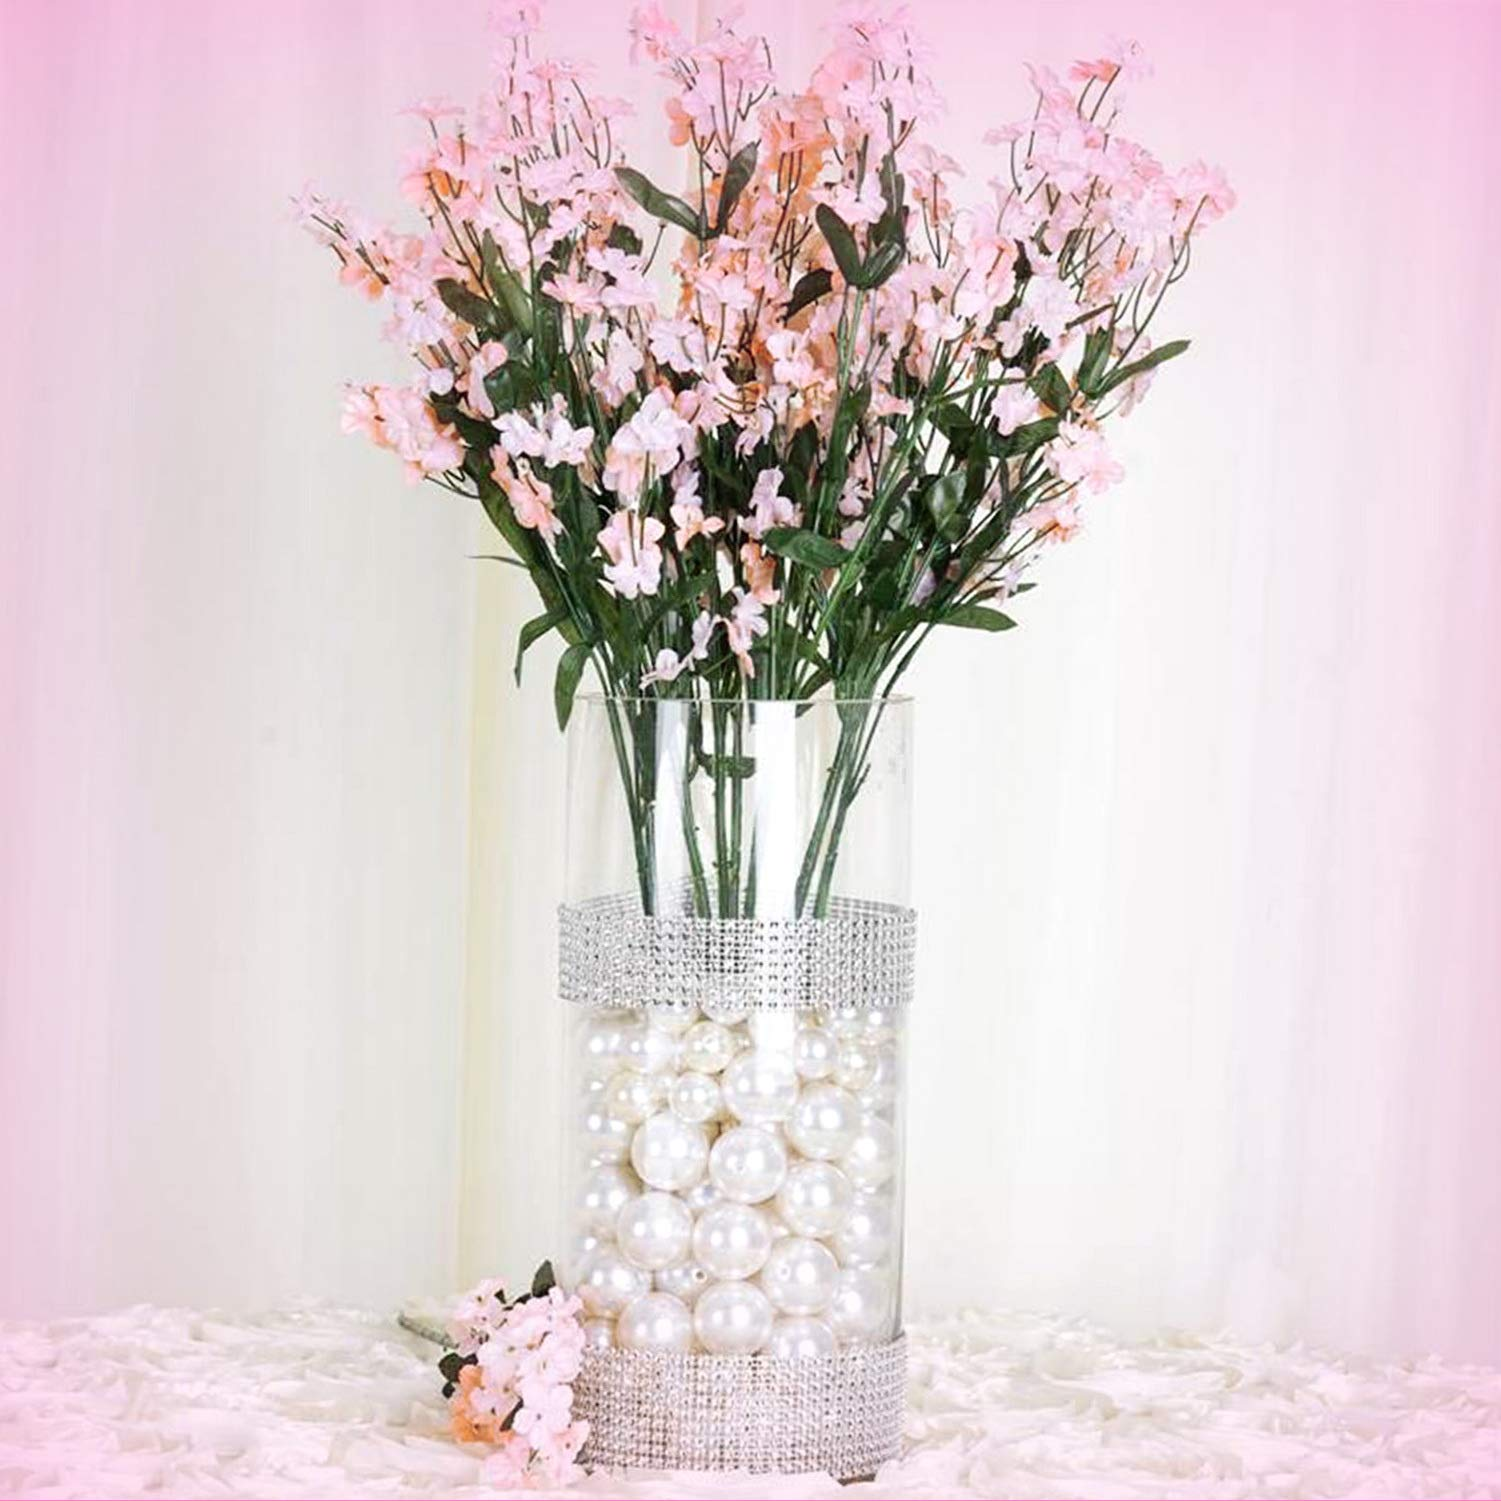 Inna-Wholesale Art Crafts New 384 Blush Silk Baby Breath Filler Decorating  Flowers Decorating Flowers Centerpieces Bouquets - Perfect for Any Wedding,  ...